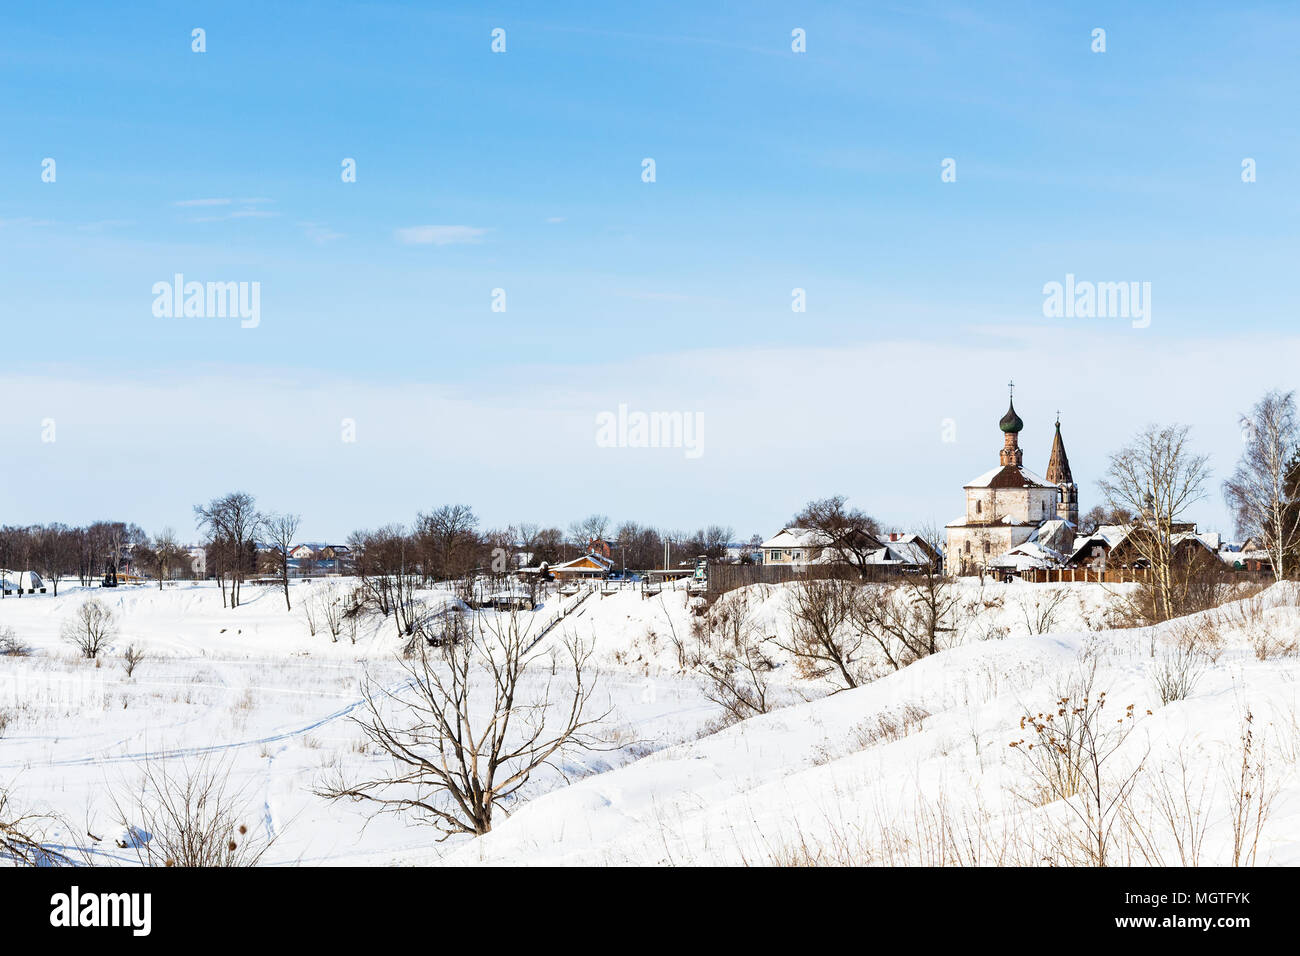 view of Suzdal town with Holy Cross Exaltation and St Cosmas and St Damian Churches in Korovniki district on riverbank of frozen river in winter in Vl - Stock Image